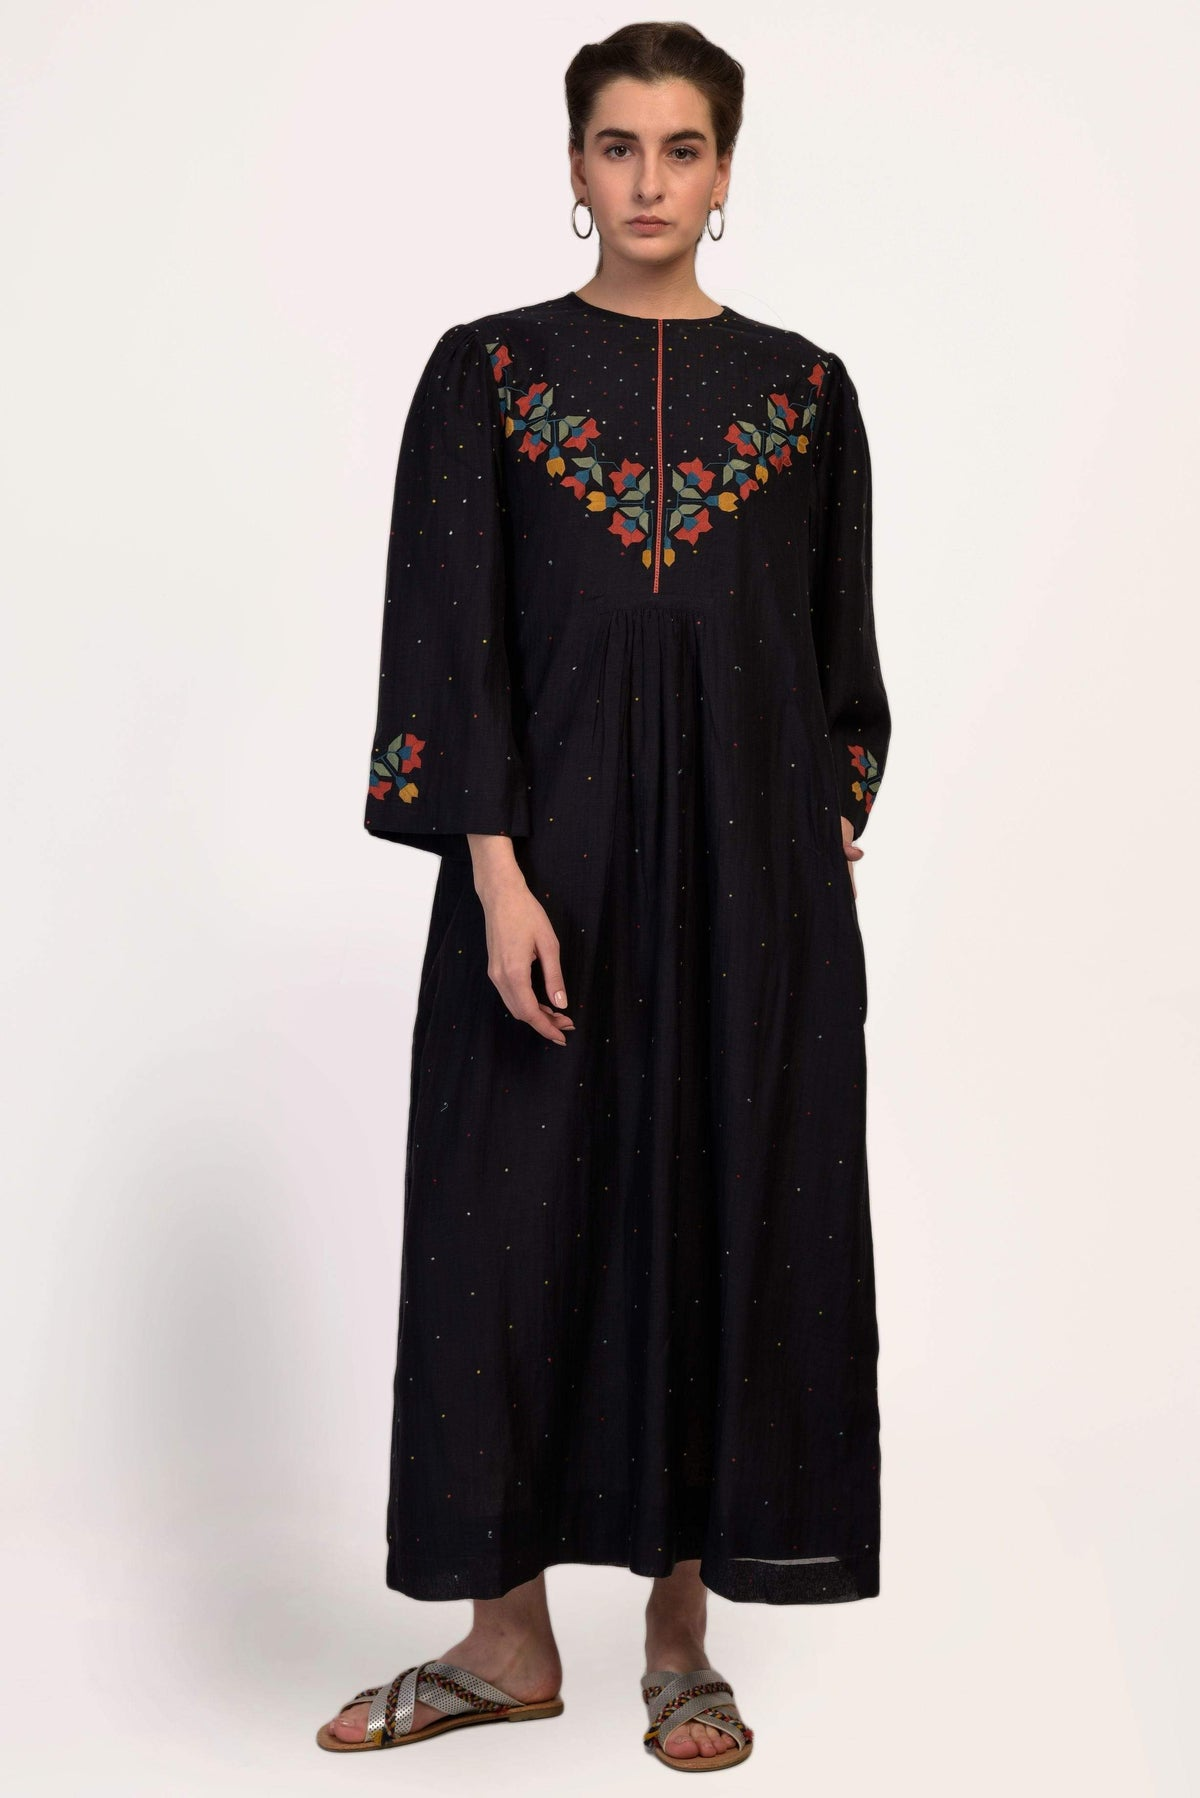 Ikai by Ragini Ahuja Dresses Centre gather dress in black